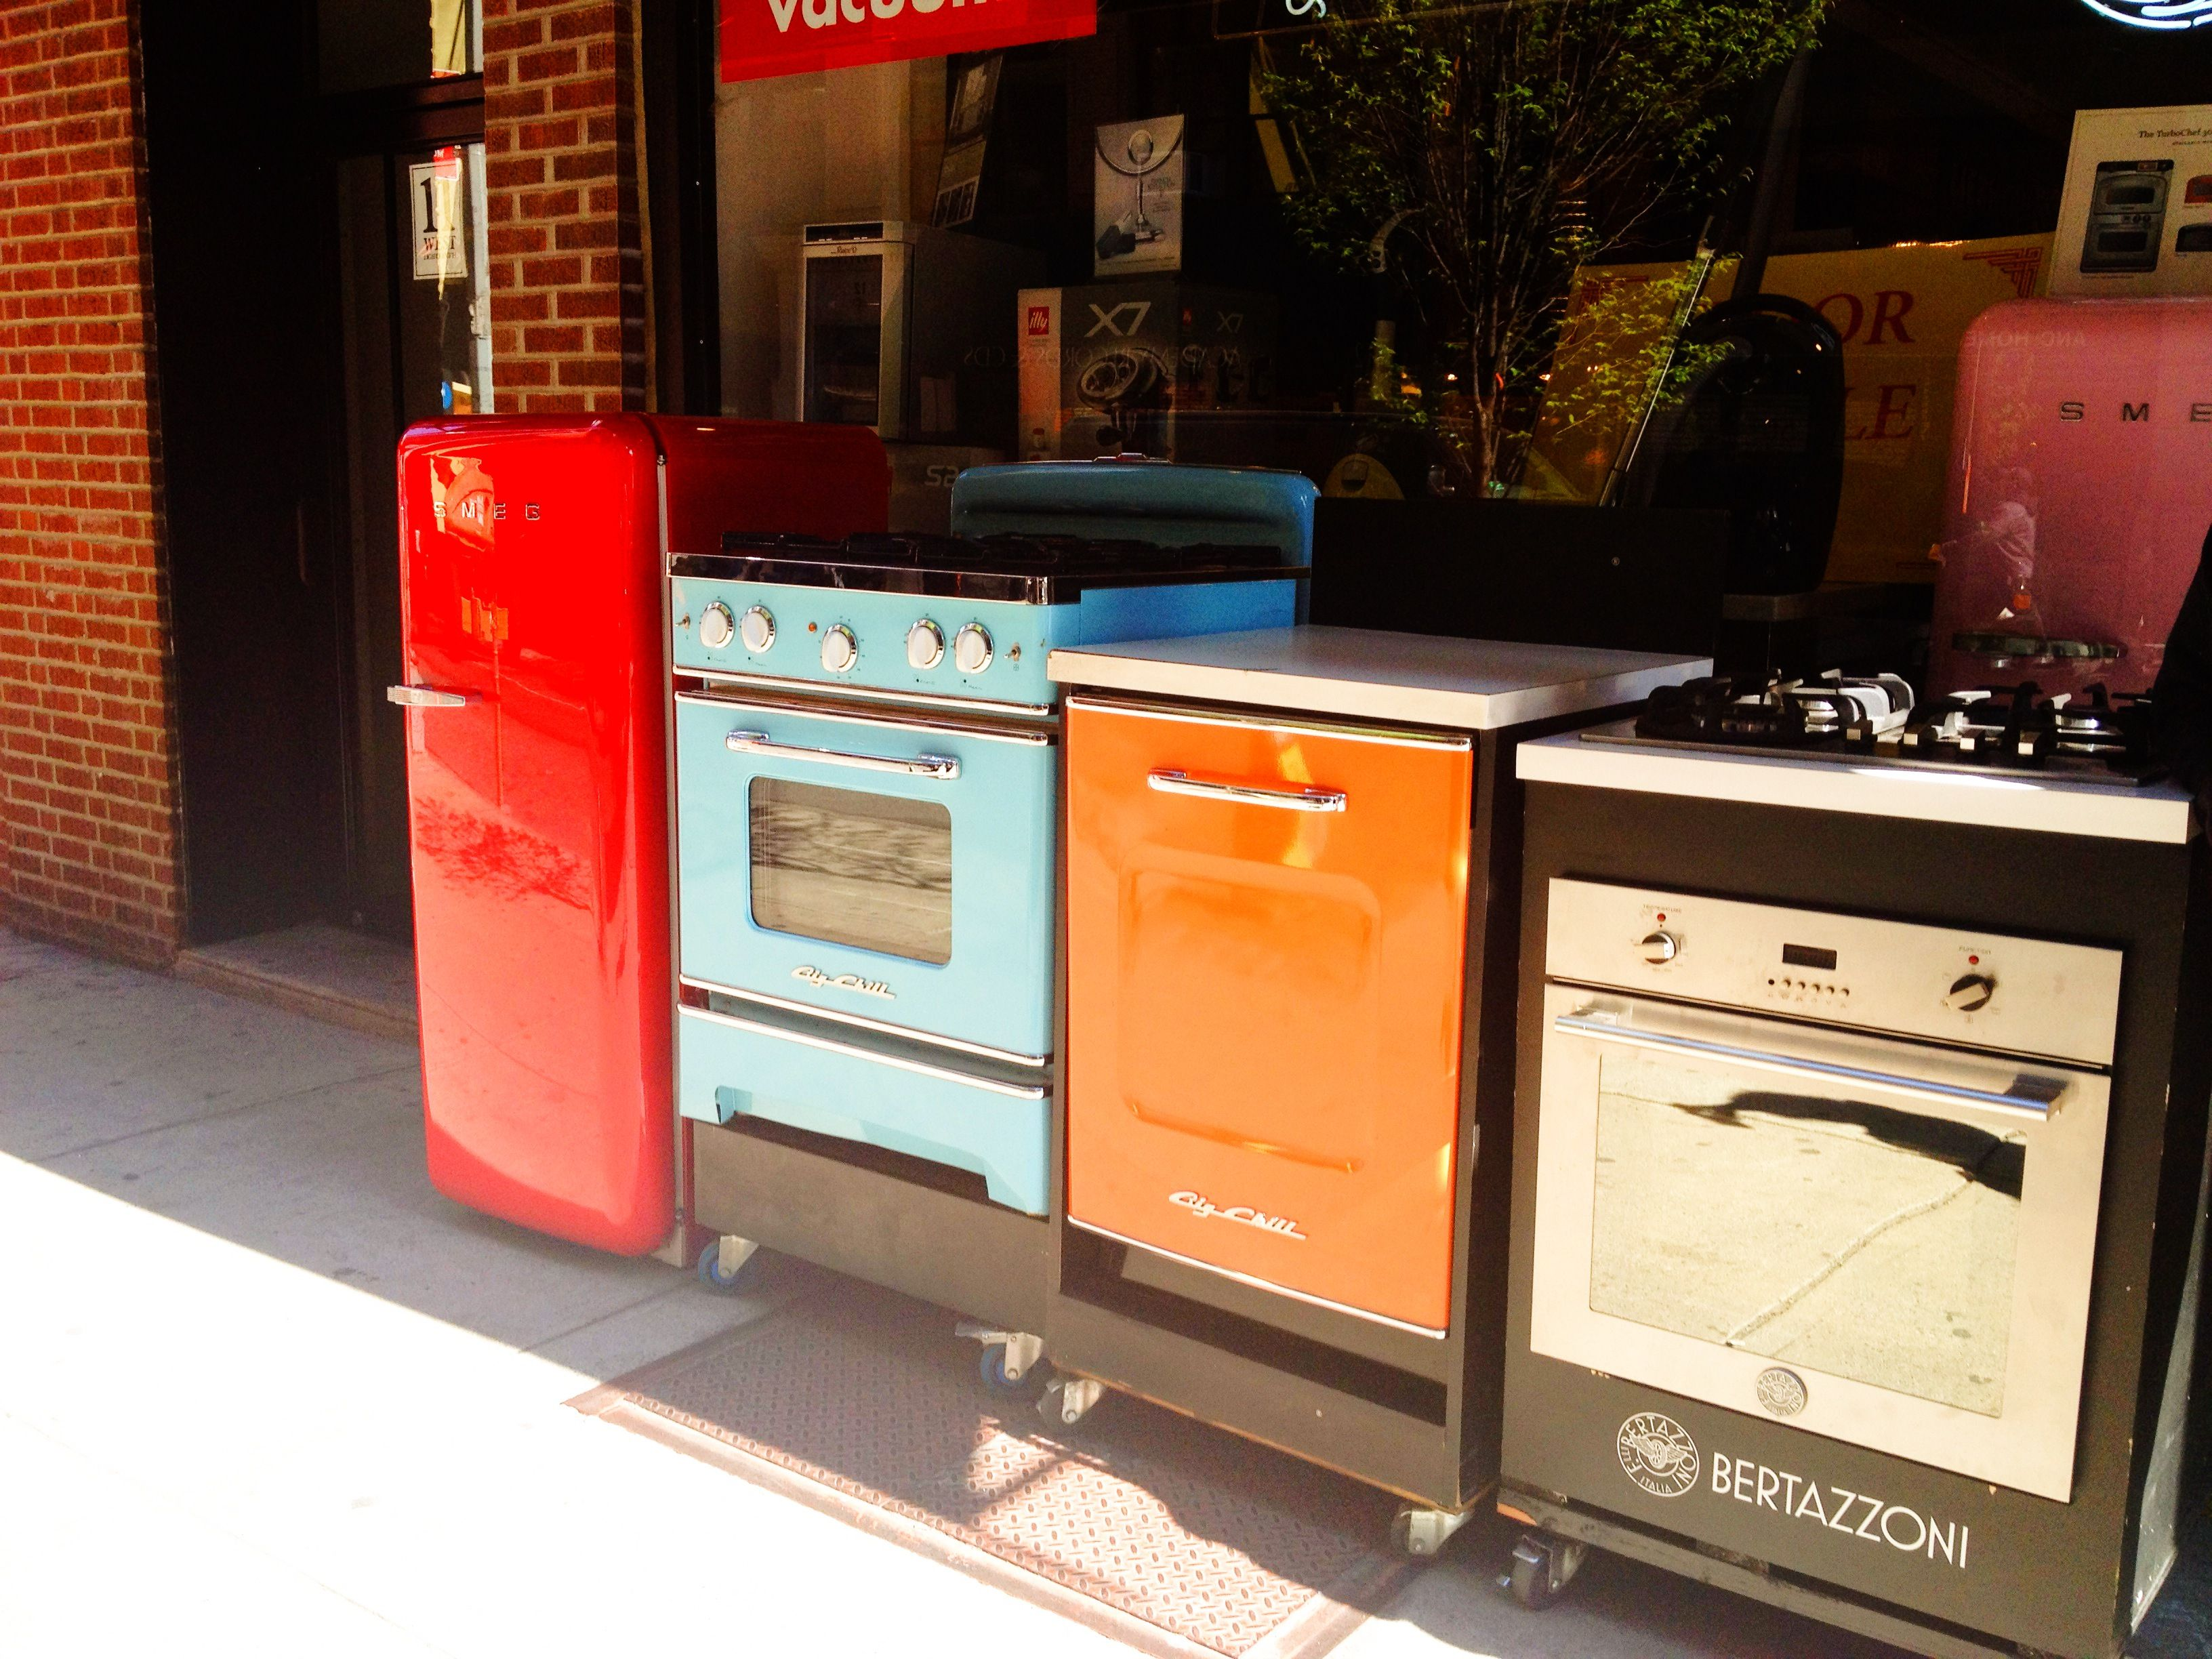 New Retro Appliances Being Delivered To A Story In